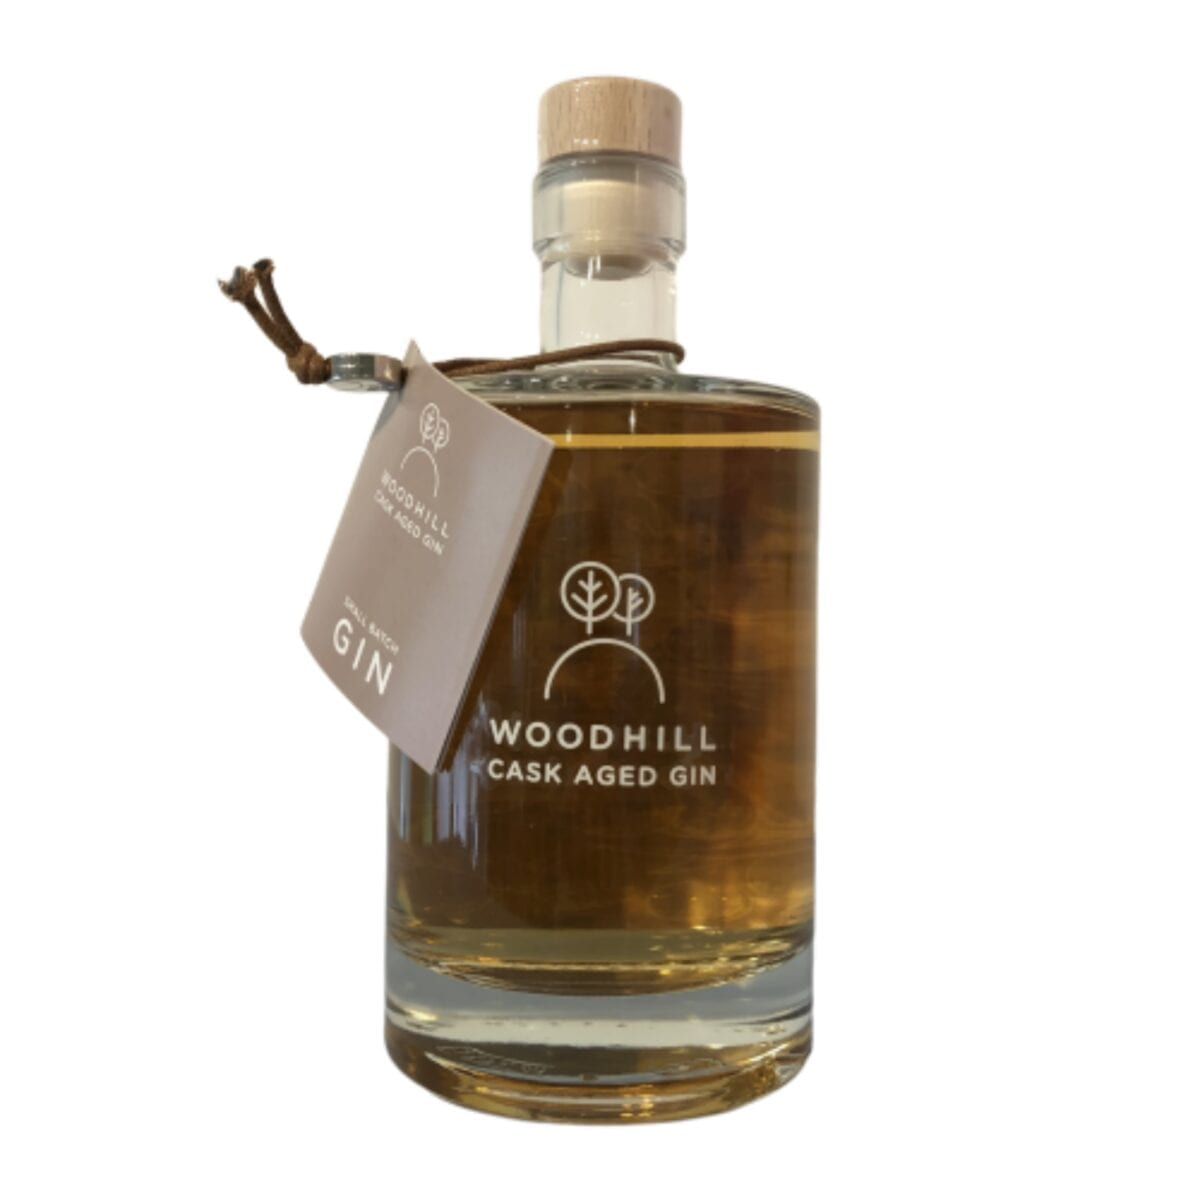 Woodhill Cask Aged Gin